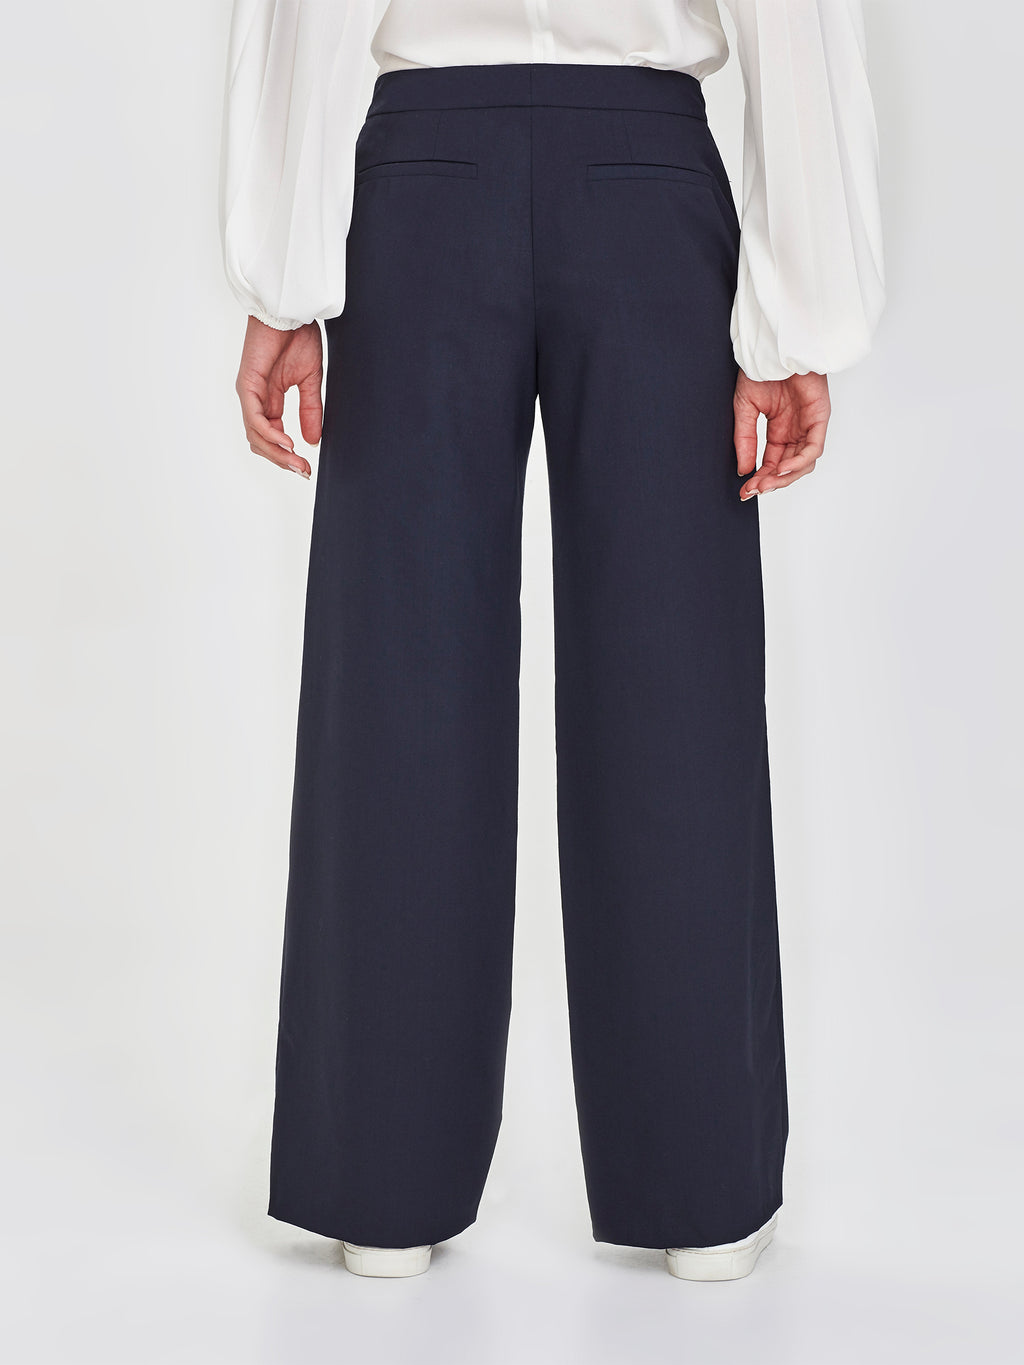 Clapham Pant (Wool Stretch Suiting) Navy